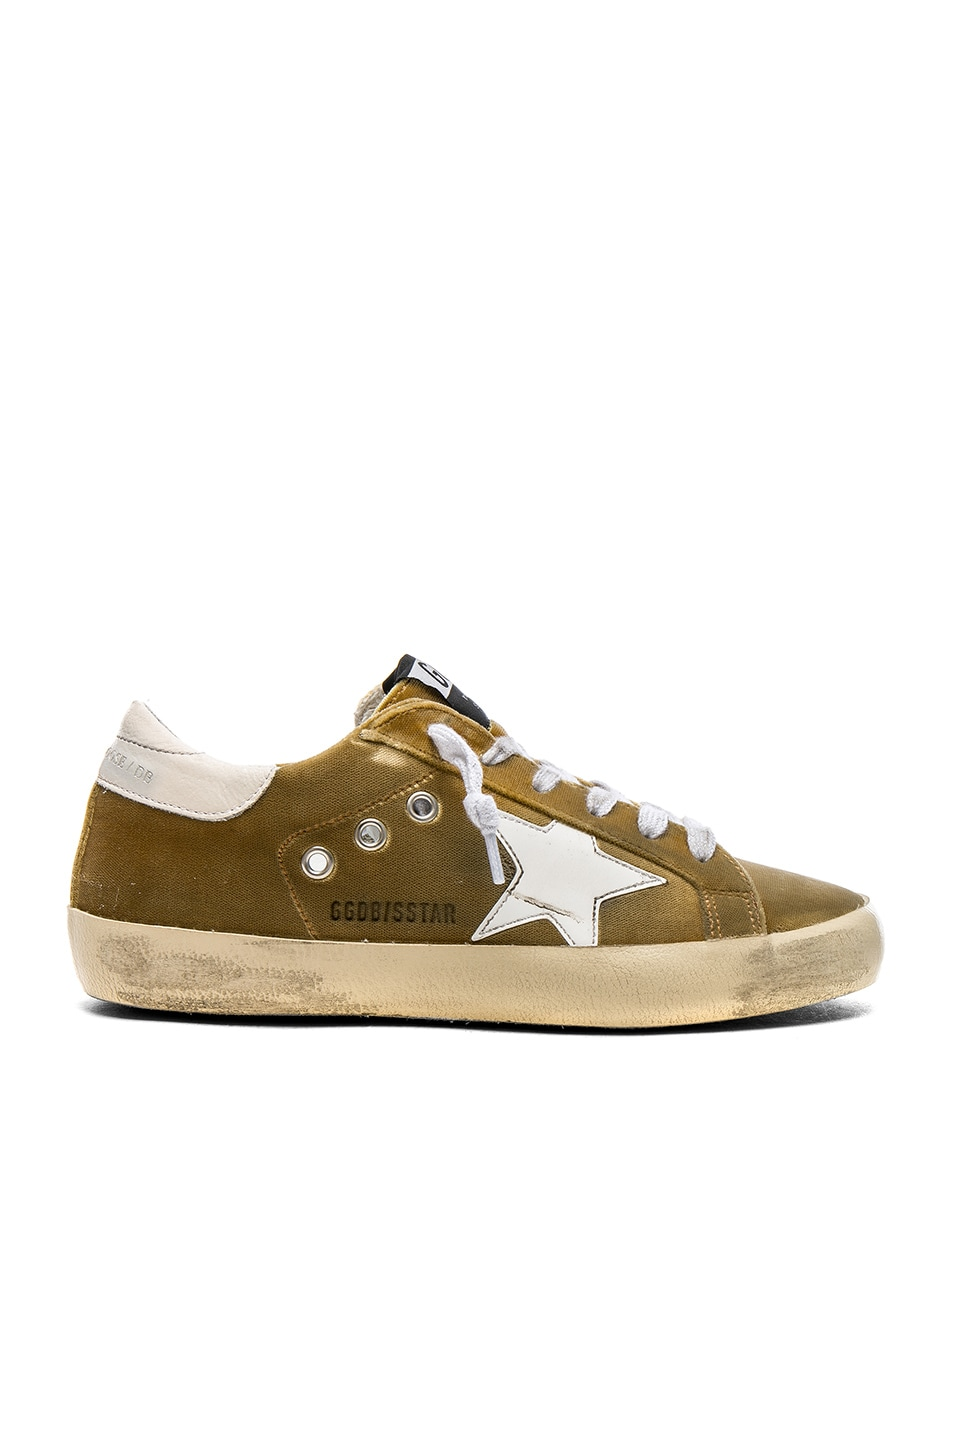 Image 1 of Golden Goose Velvet Superstar Sneakers in Gold Velvet